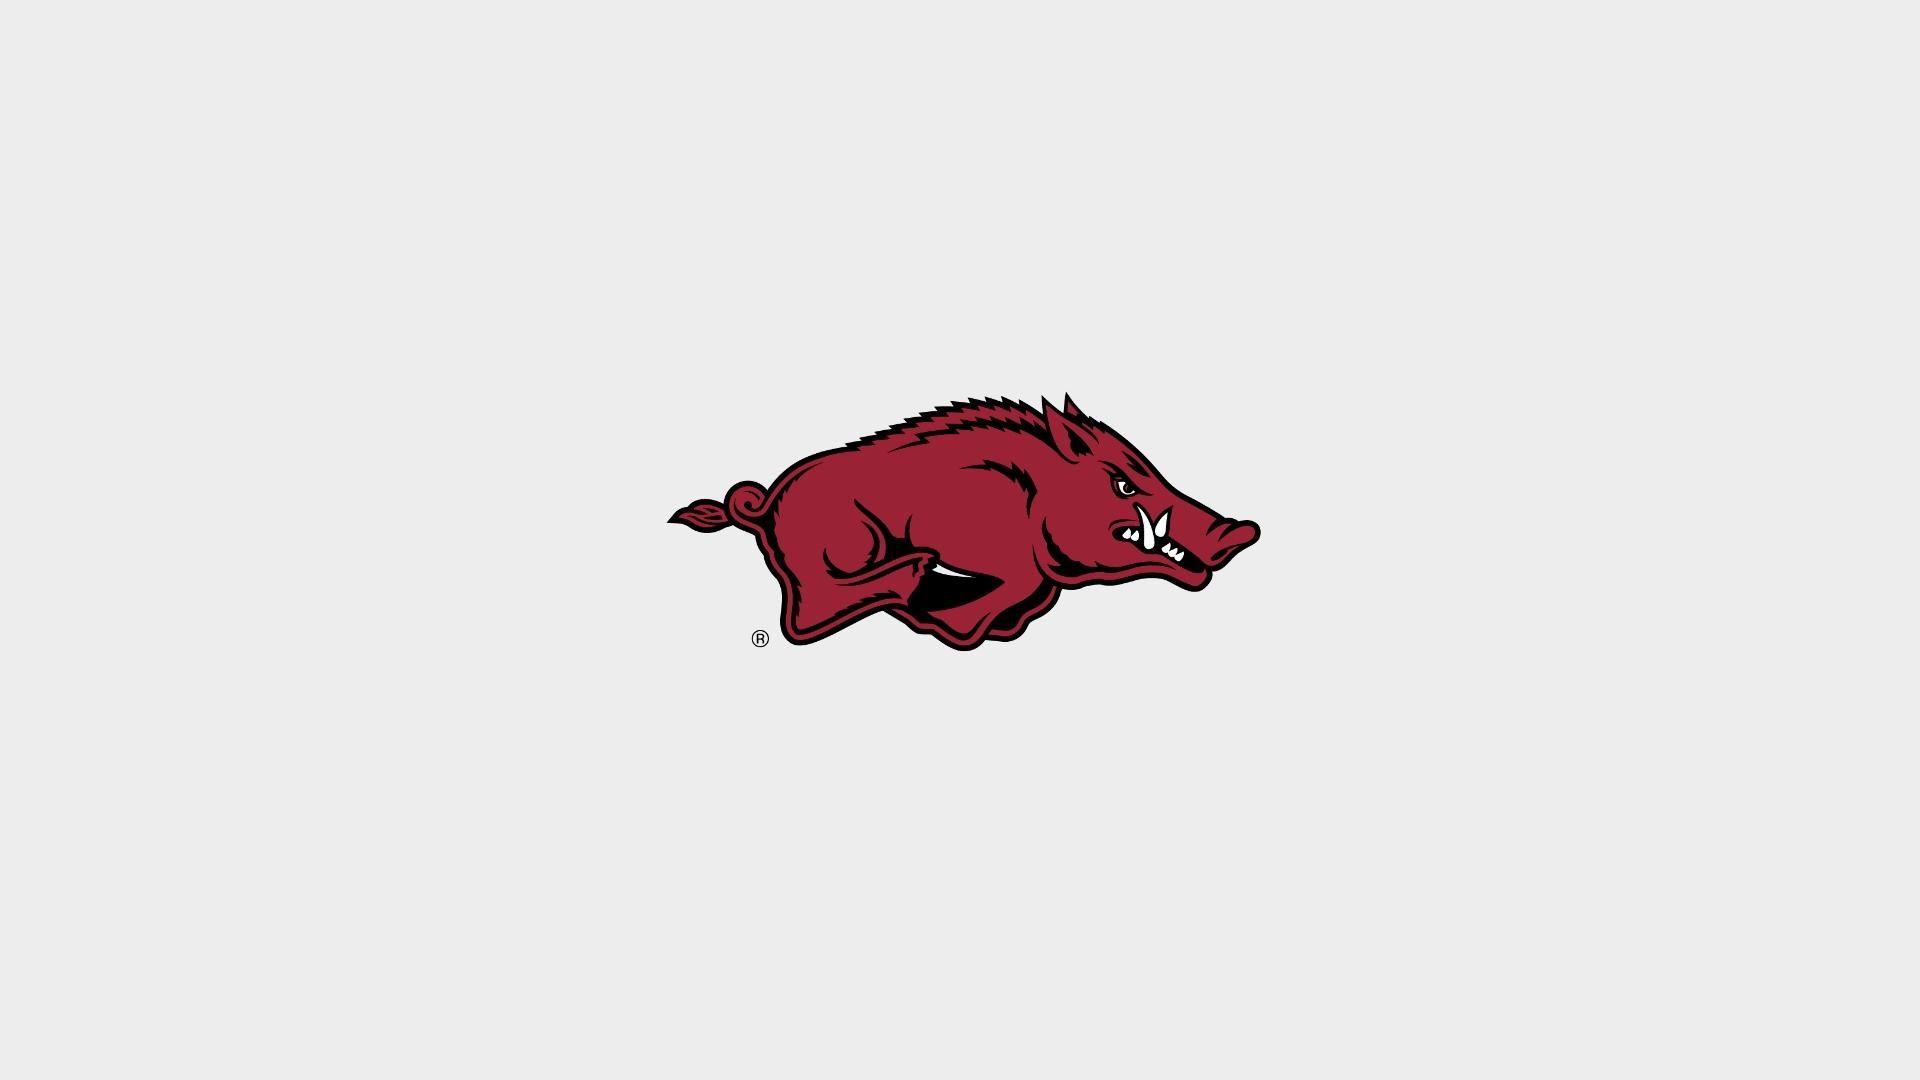 Razorback Wallpaper 64 Images HD Wallpapers Download Free Images Wallpaper [1000image.com]